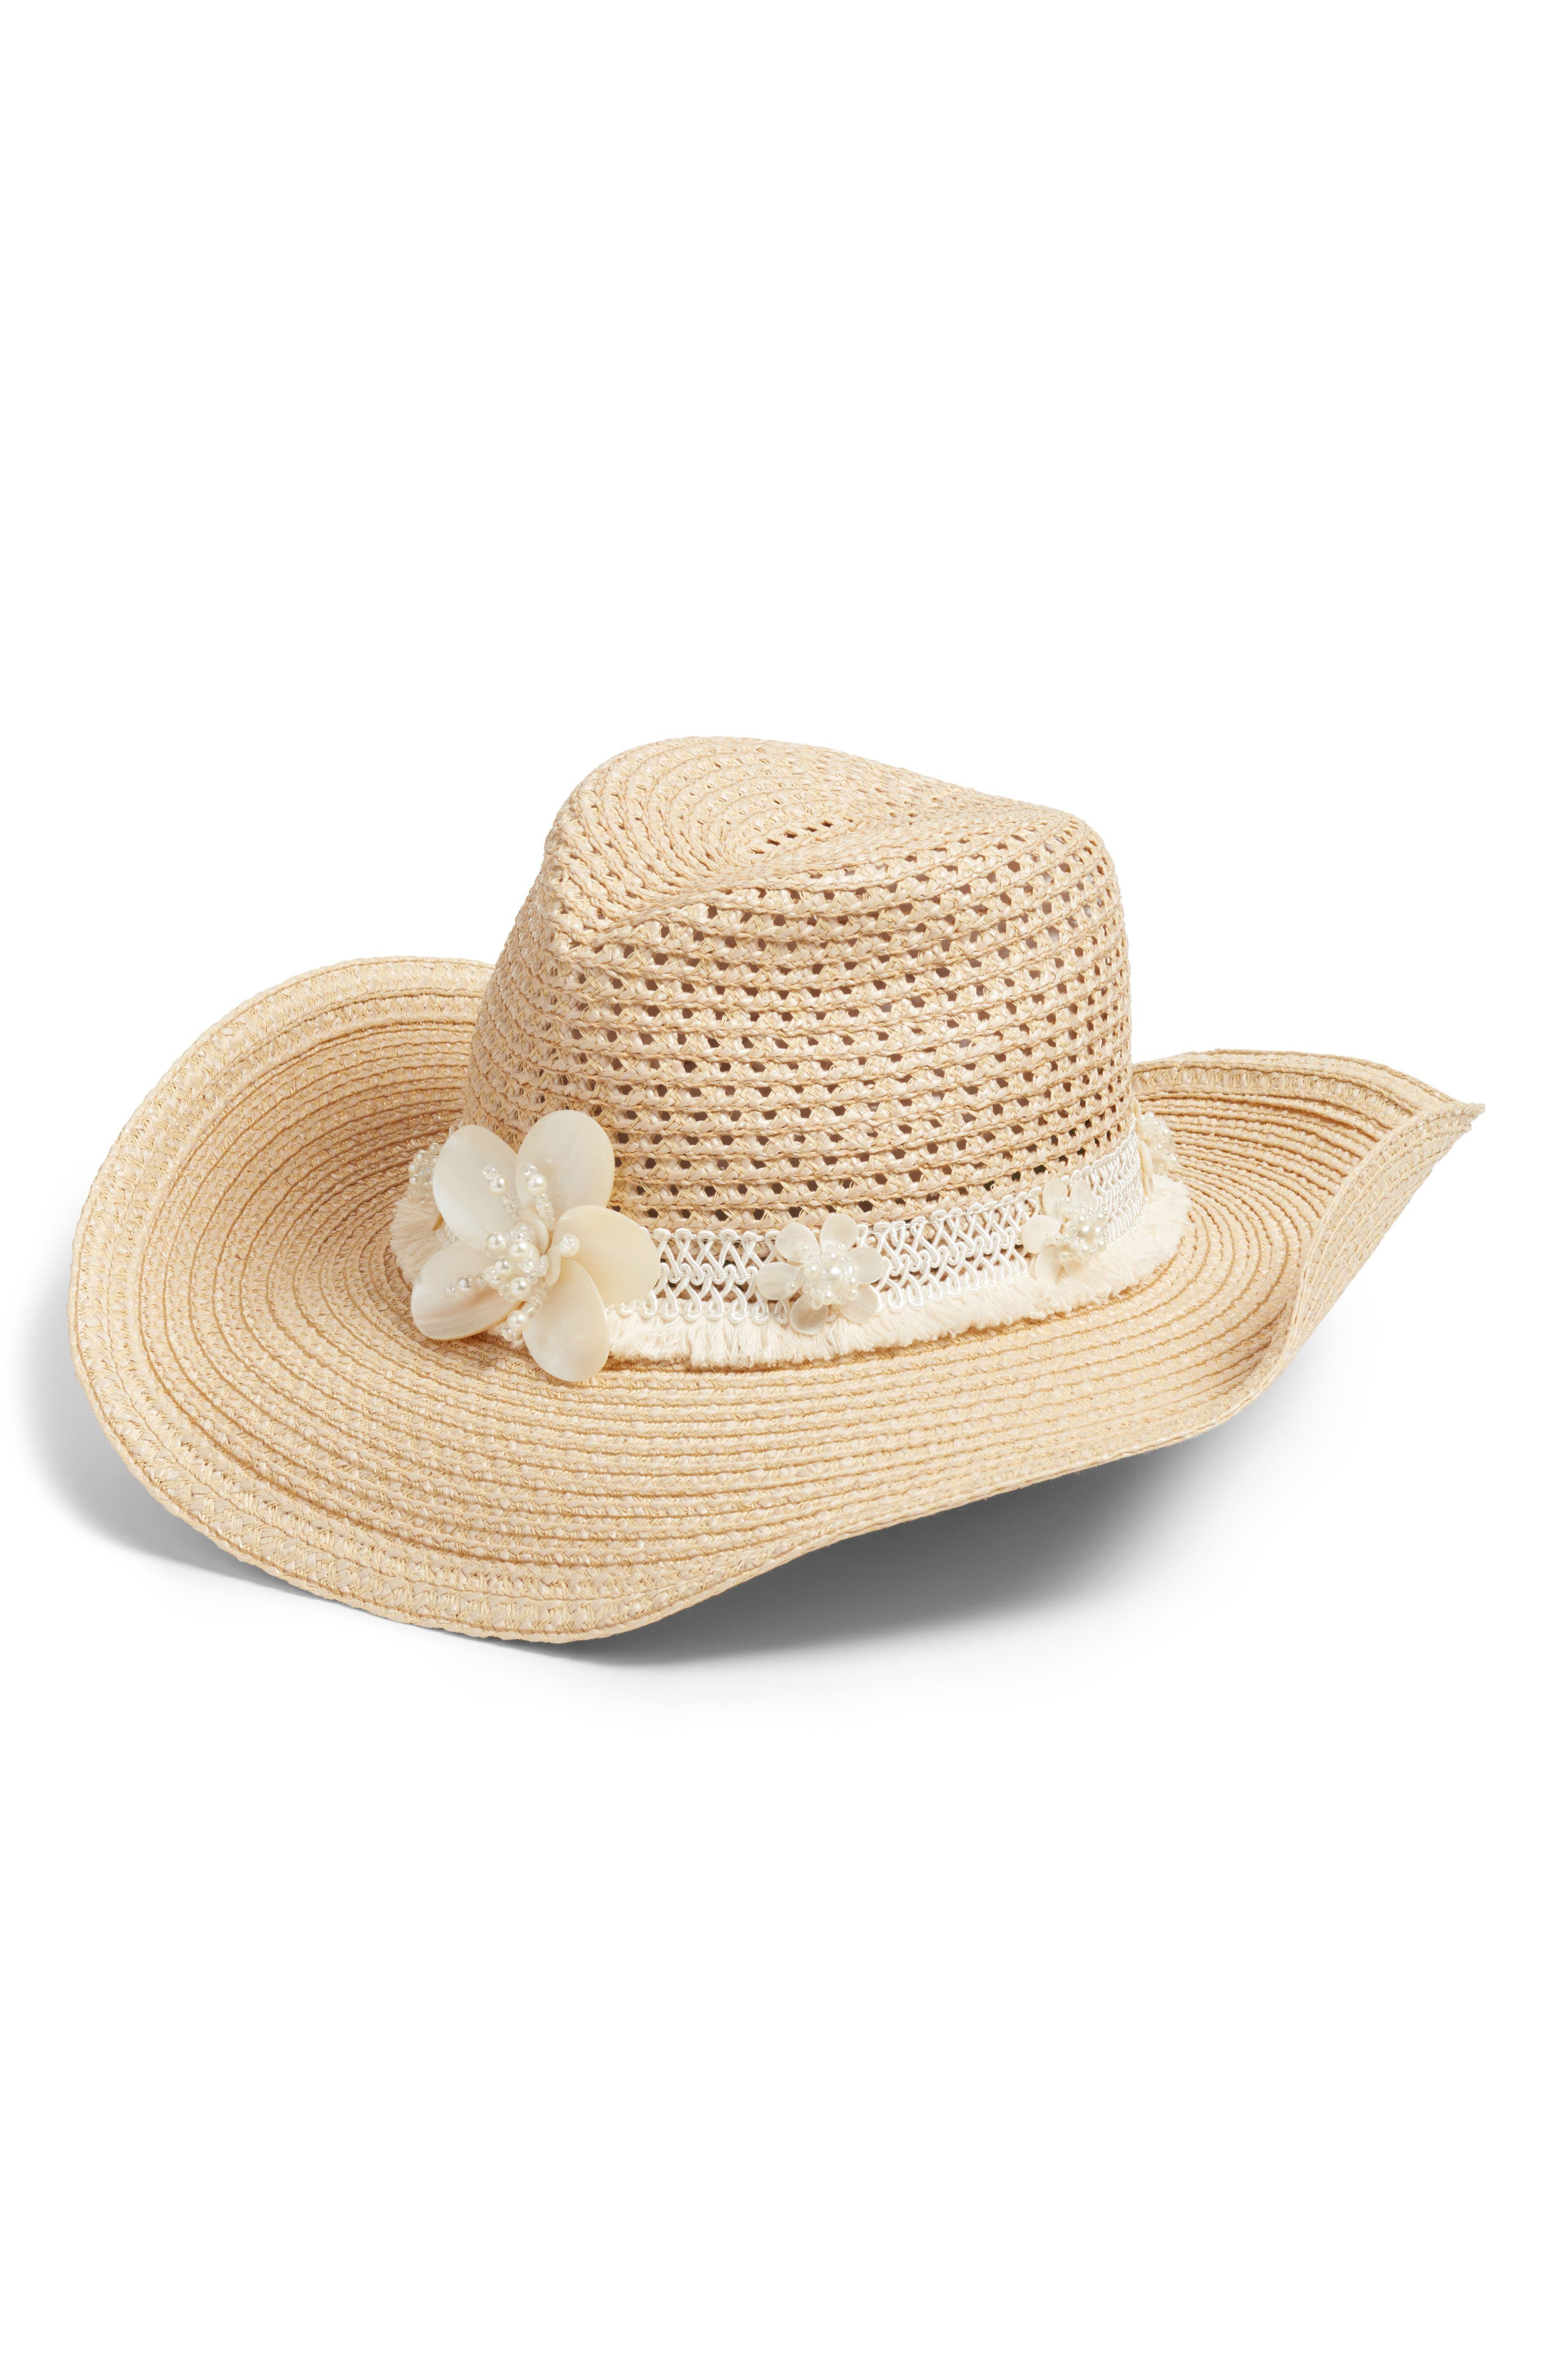 Eric Javits St. Tropez Squishee® Western Hat with Mother-of-Pearl Trim